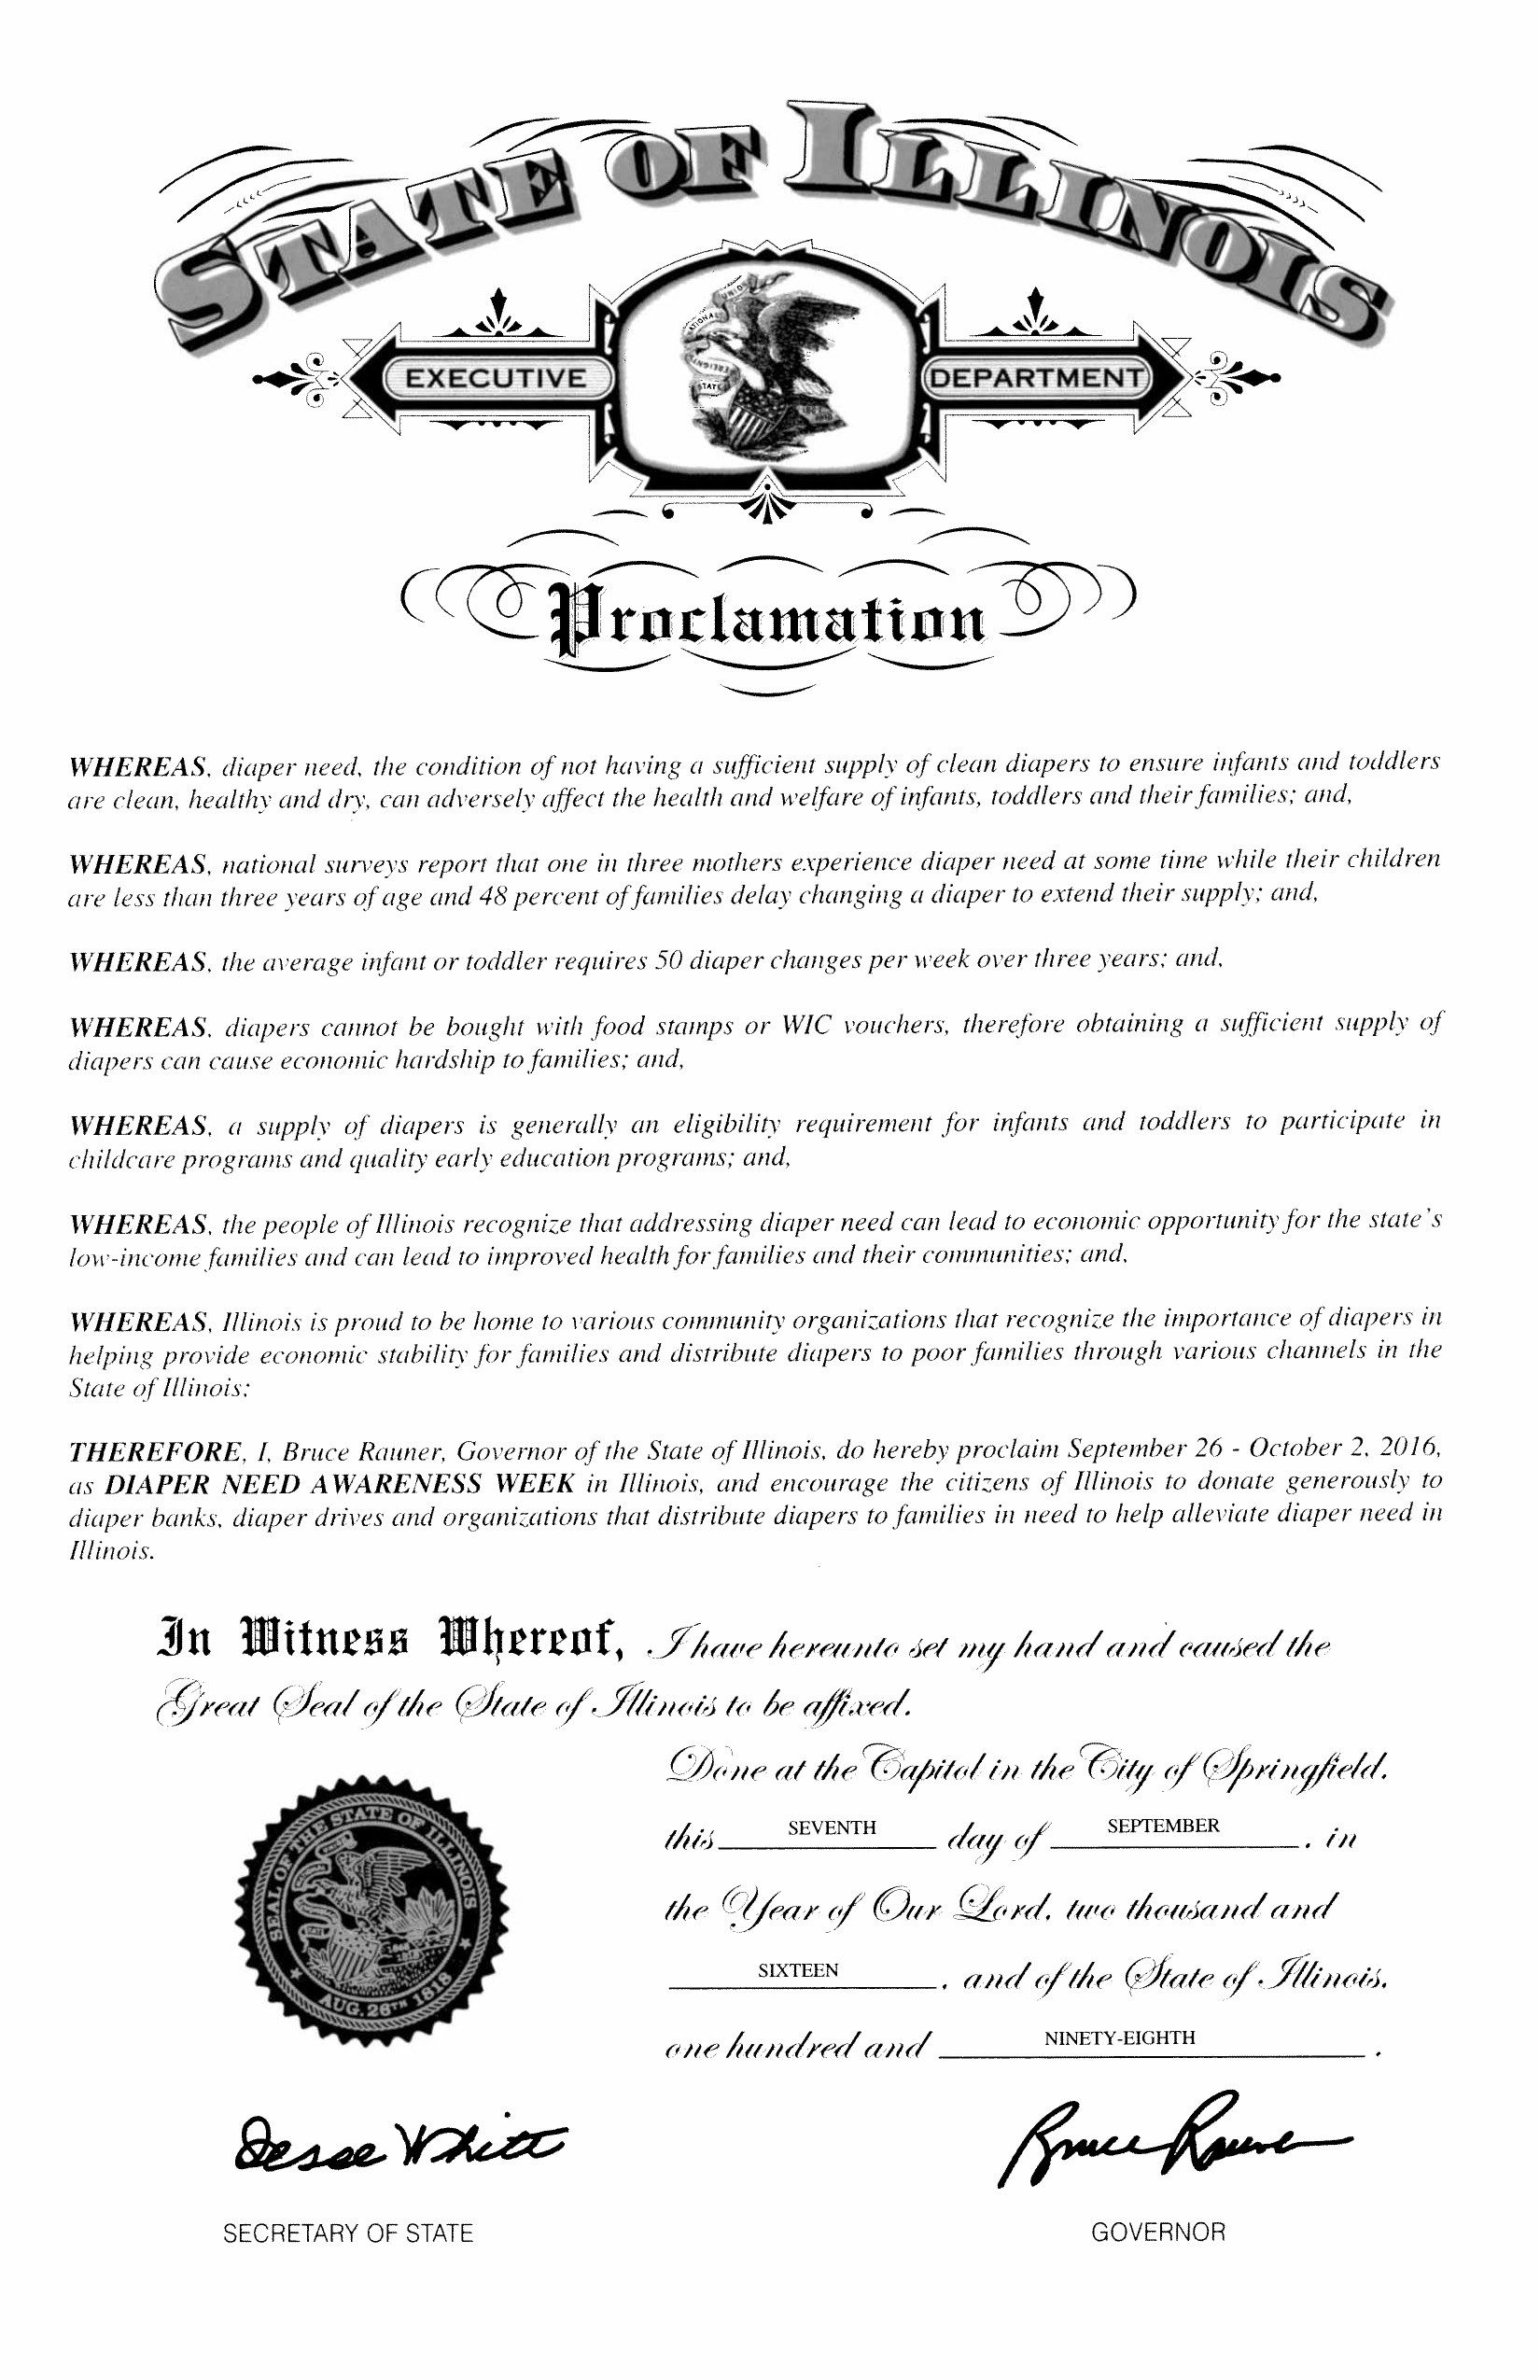 ILLINOIS - Governor Bruce Rauner's proclamation recognizing Diaper Need Awareness Week (Sep. 26 - Oct. 2, 2016) #diaperneed diaperneed.org